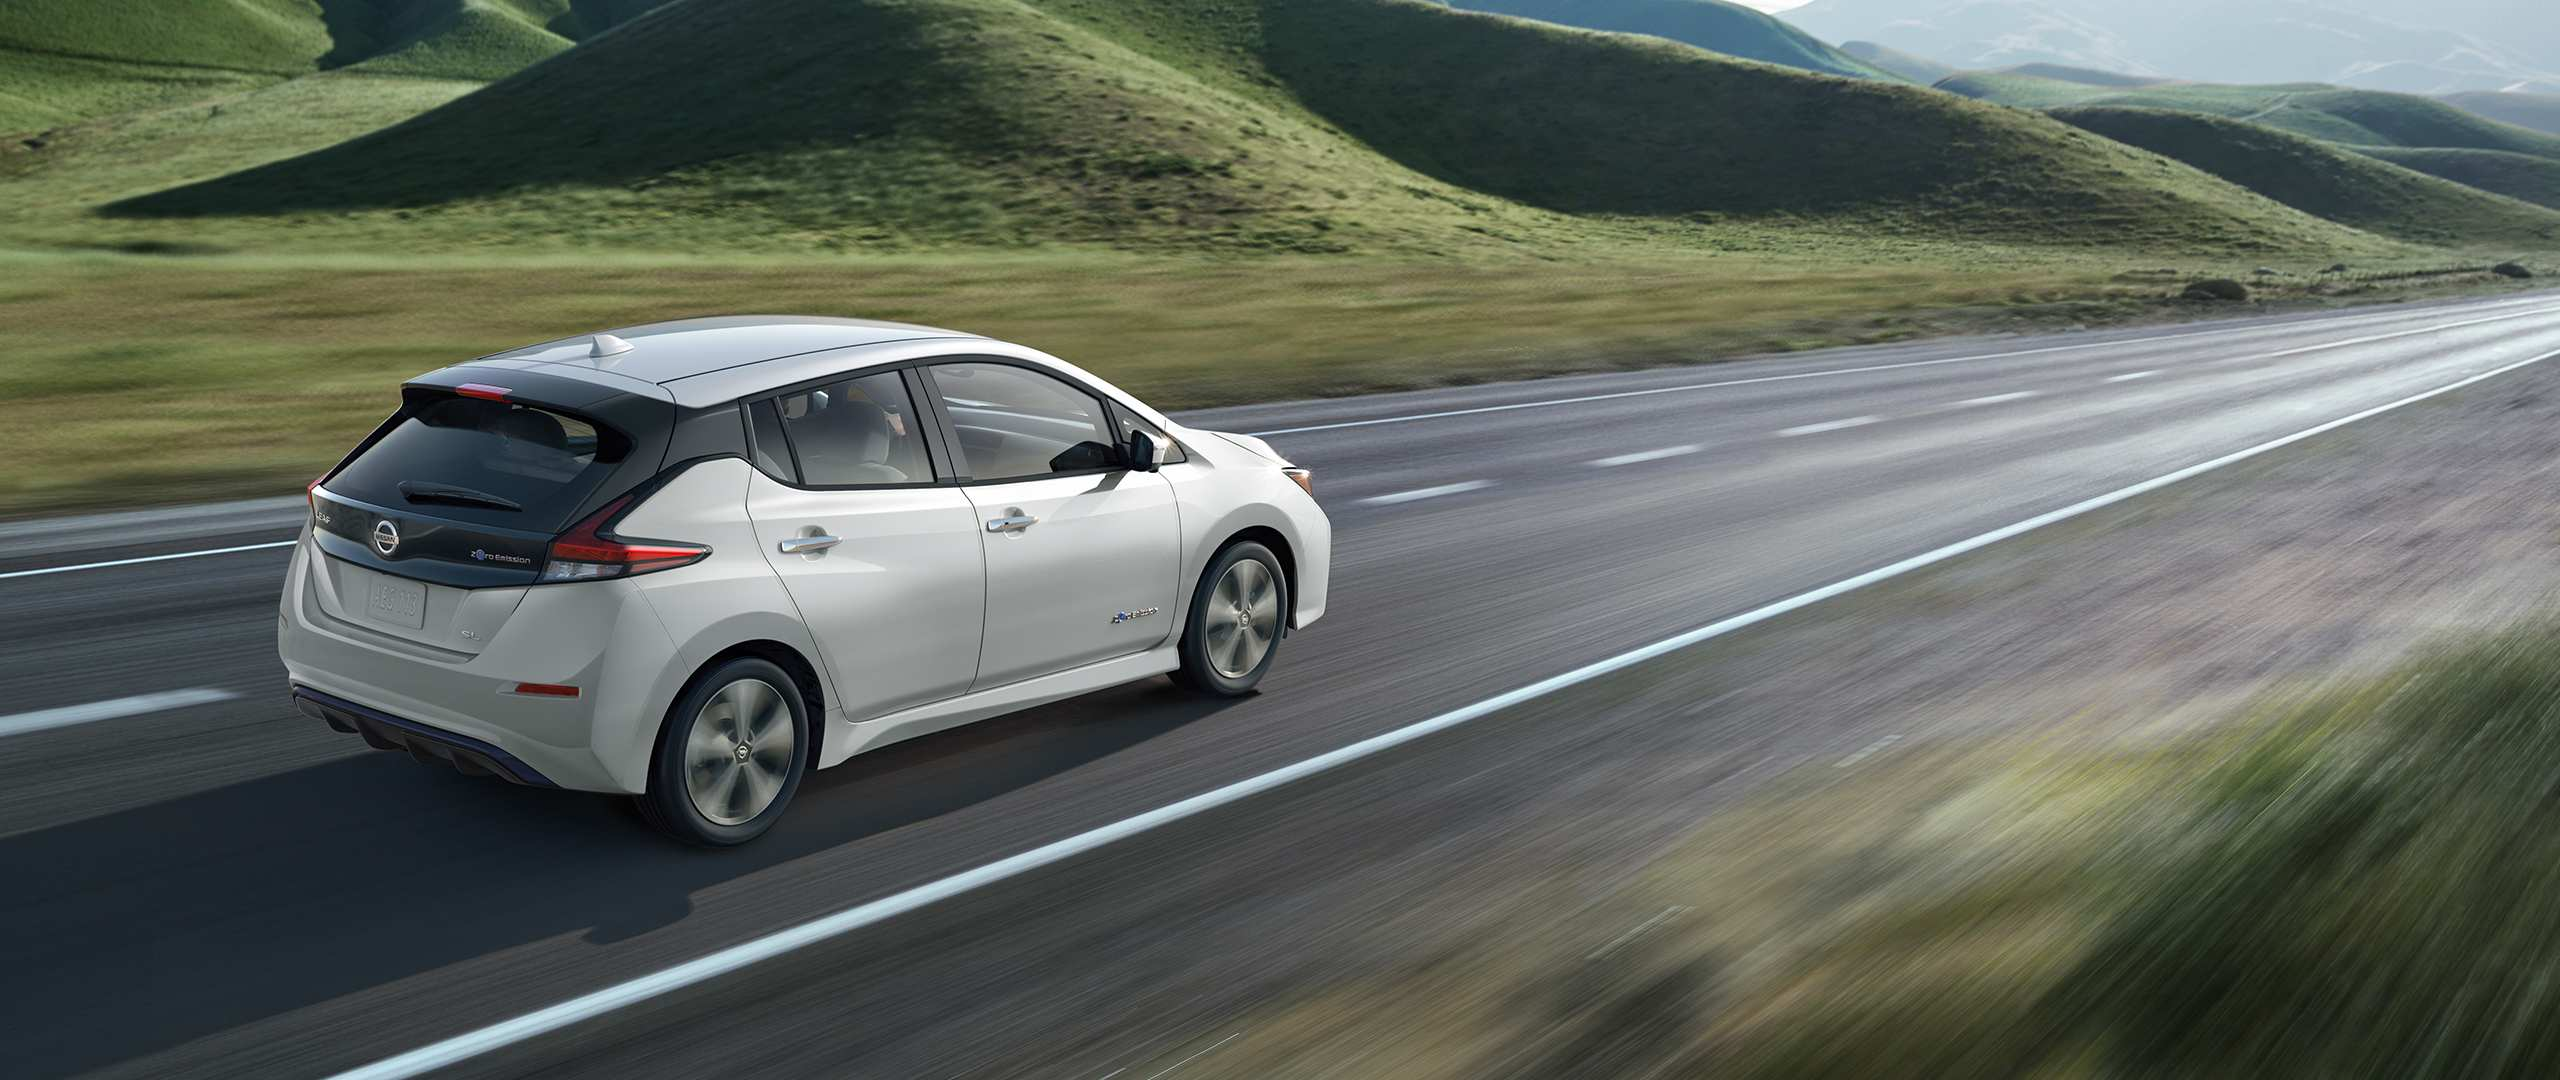 98 The Best 2019 Nissan Leaf Range Wallpaper